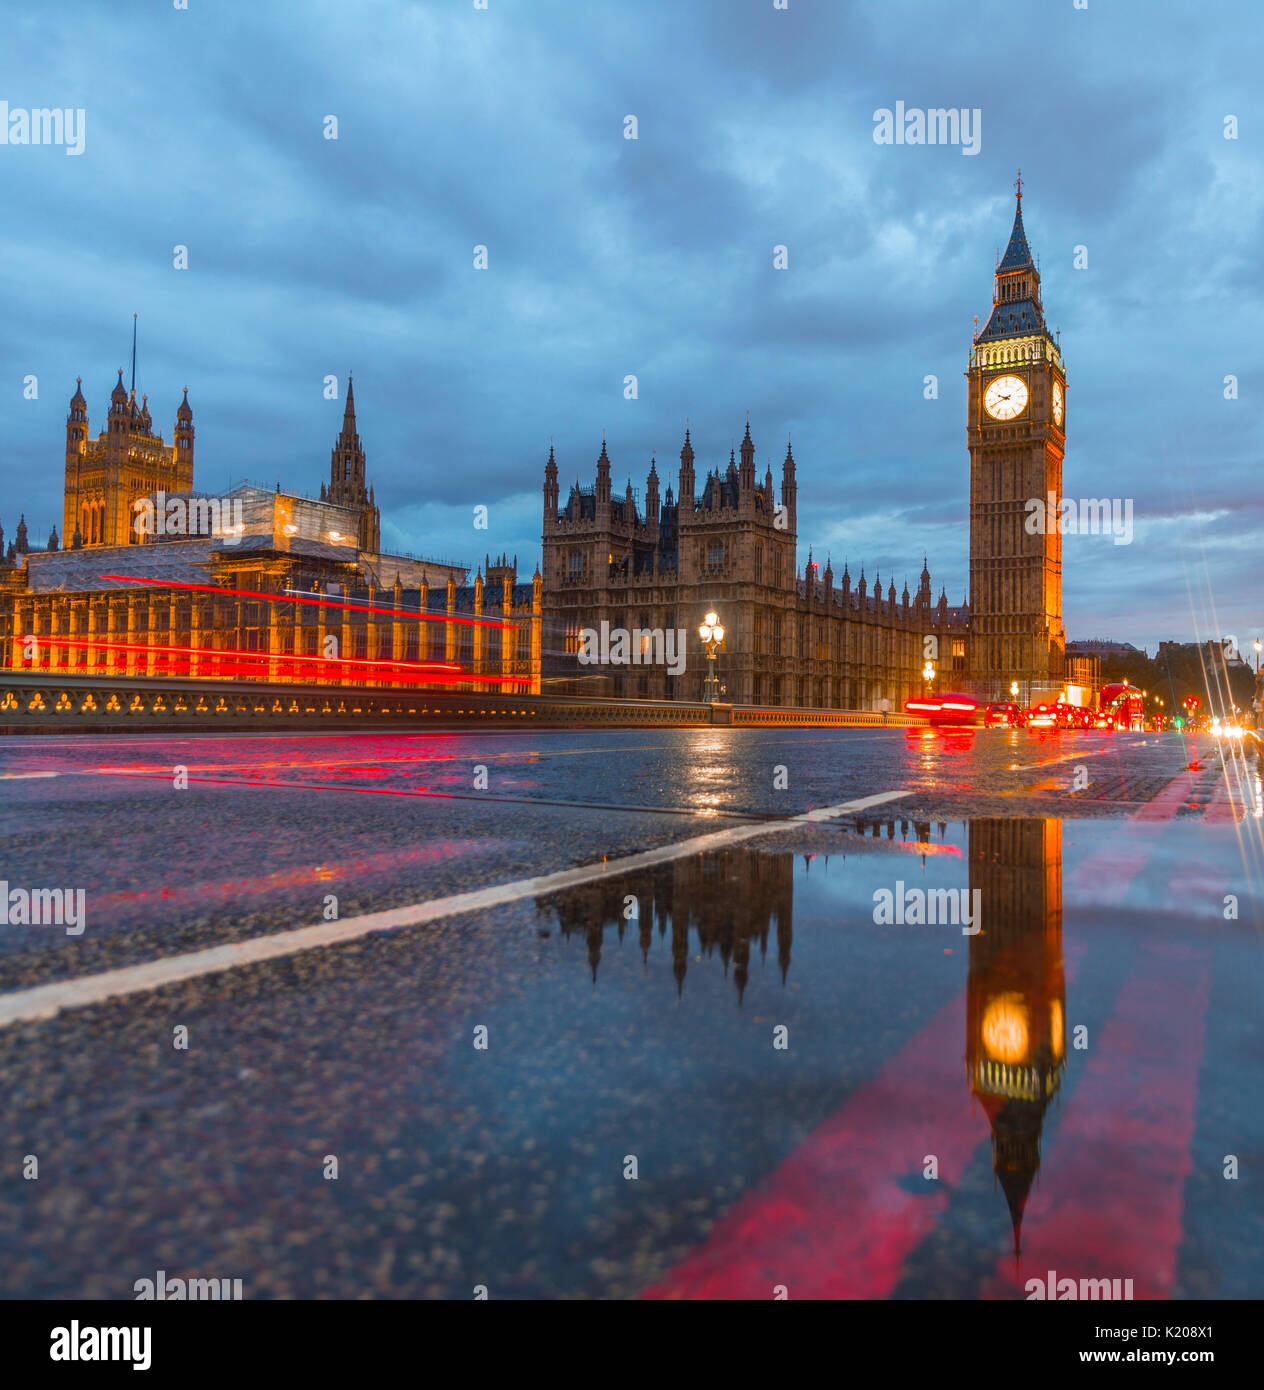 Westminster Bridge, Palace of Westminster, Houses of Parliament with reflection, Big Ben, Light trails, City of Westminster - Stock Image